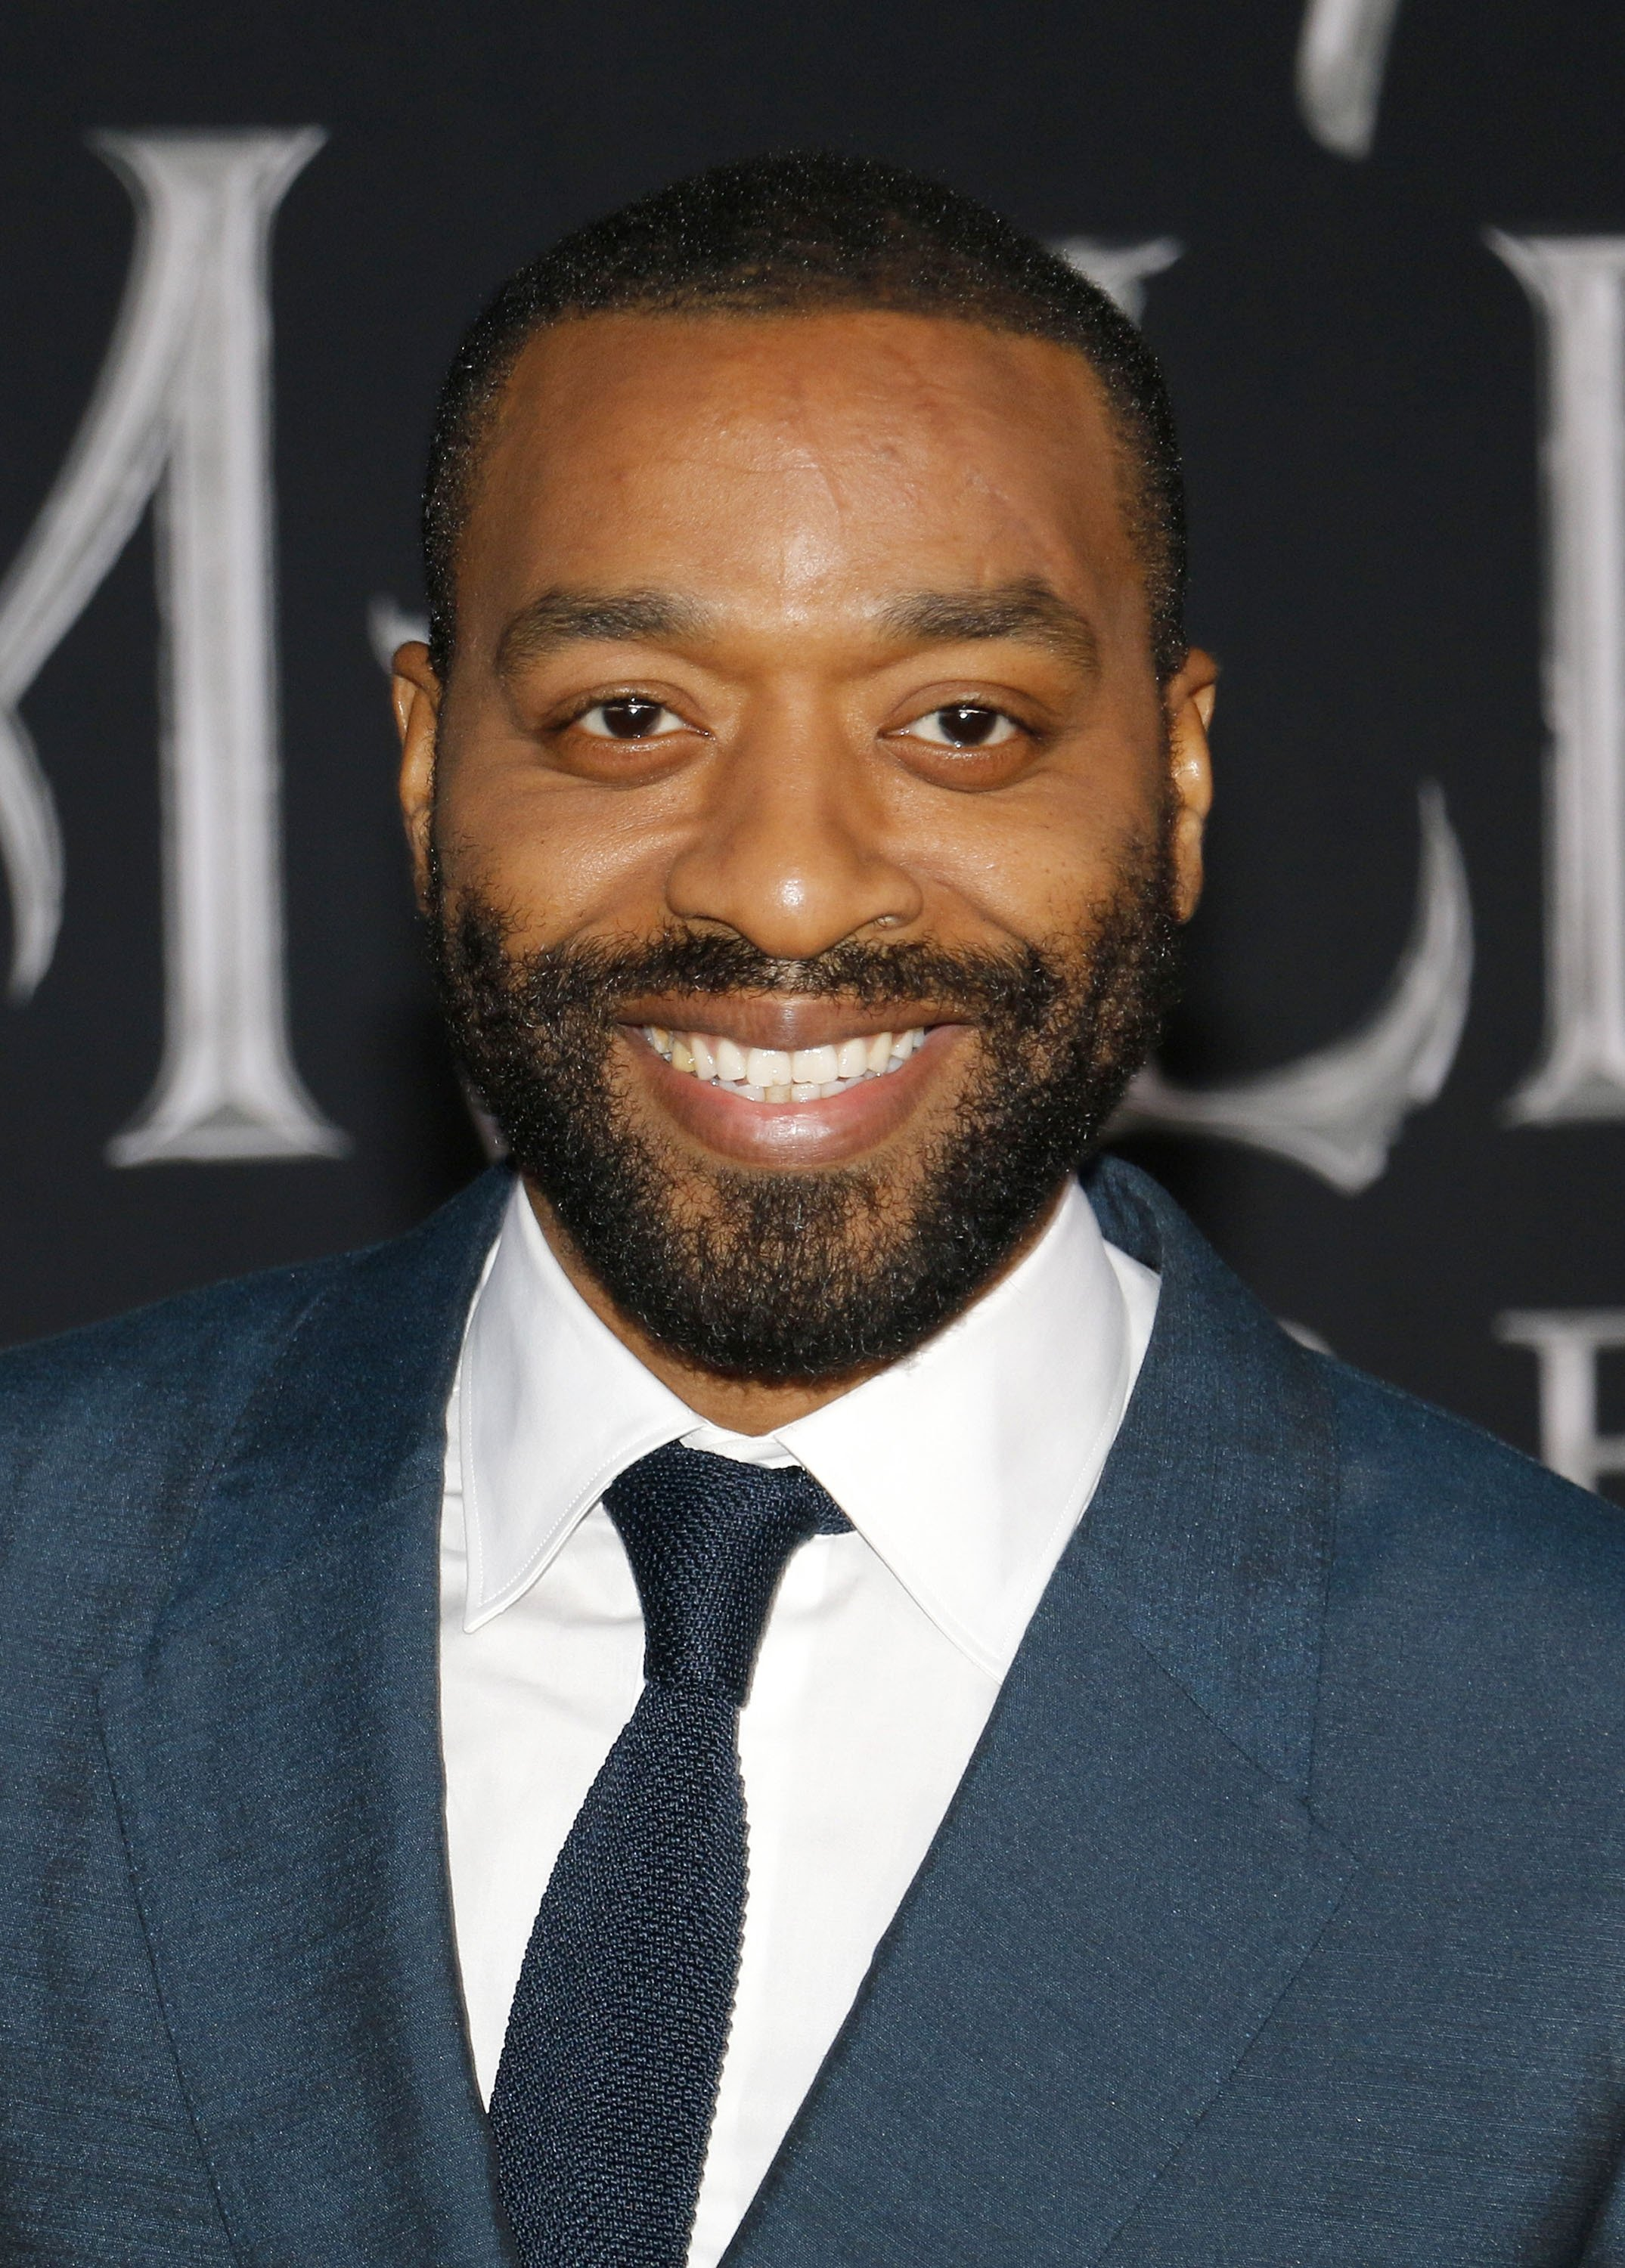 The audiobook of Susanna Clarke's 'Piranesi,' read by Chiwetel Ejiofor, won the 2021 Audie Award. (Shutterstock Photo)